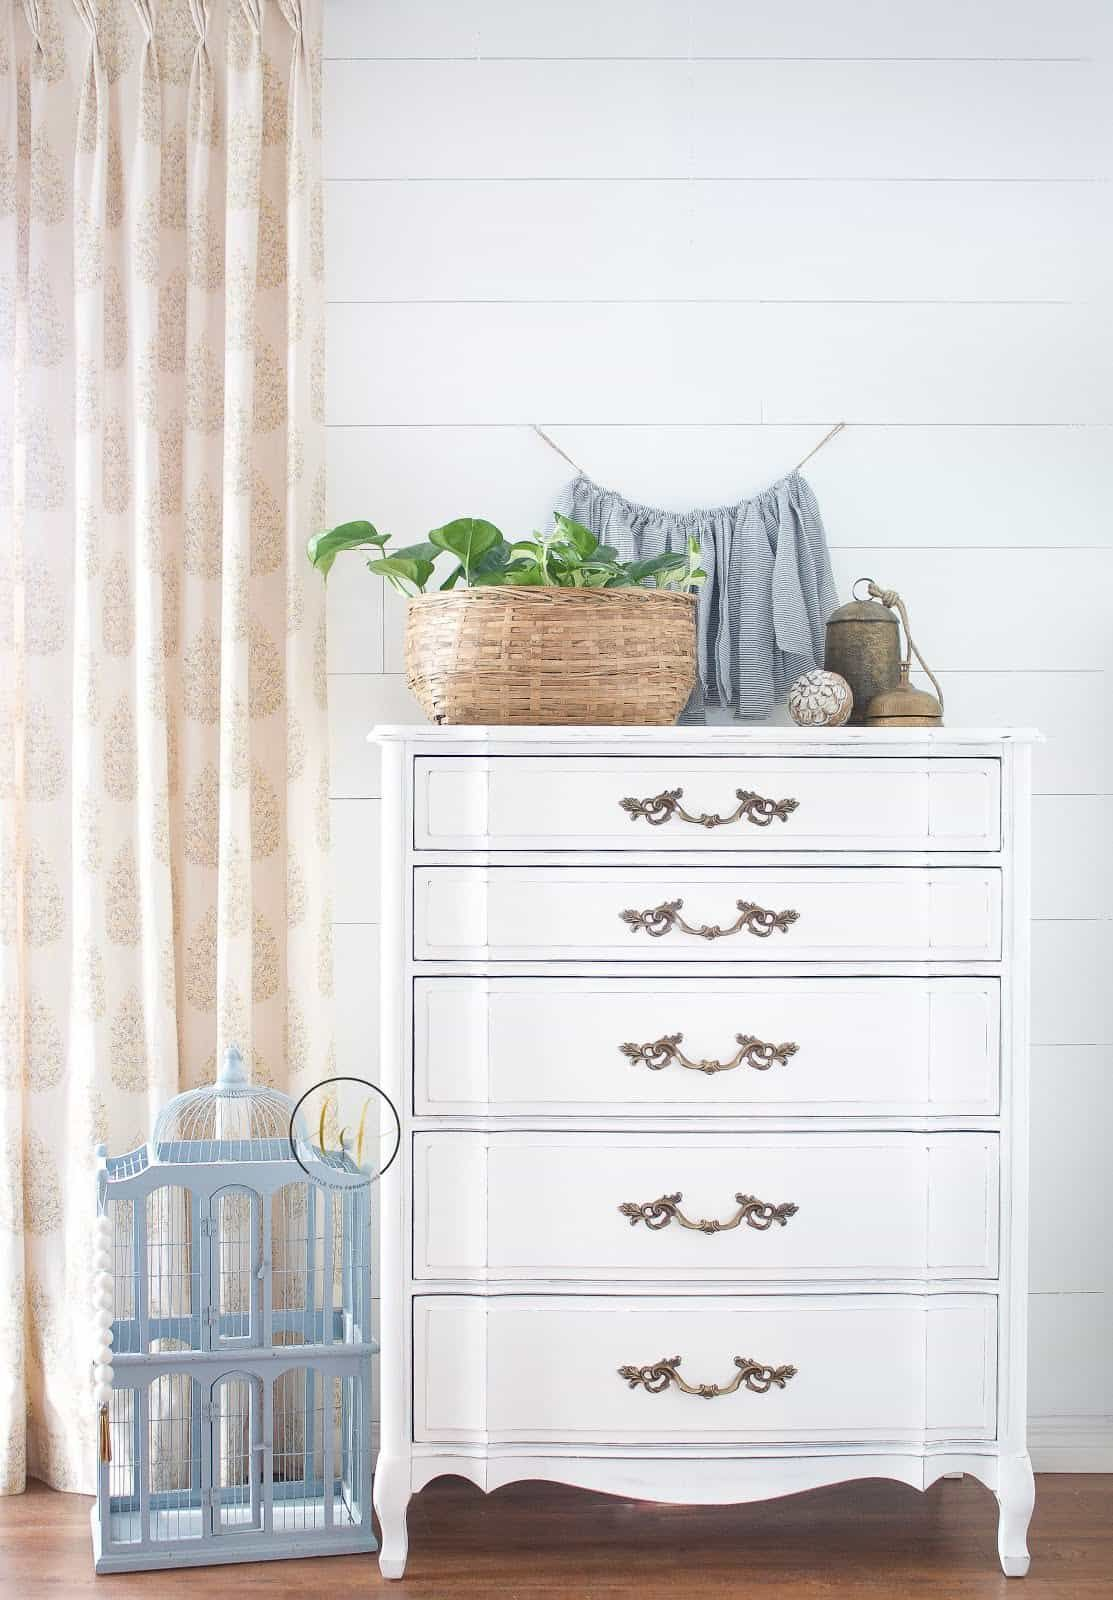 Shabby Chic French Provincial Dresser Country Chic Paint Blog In 2020 Shabby Chic Dresser Shabby Chic Country Chic Paint